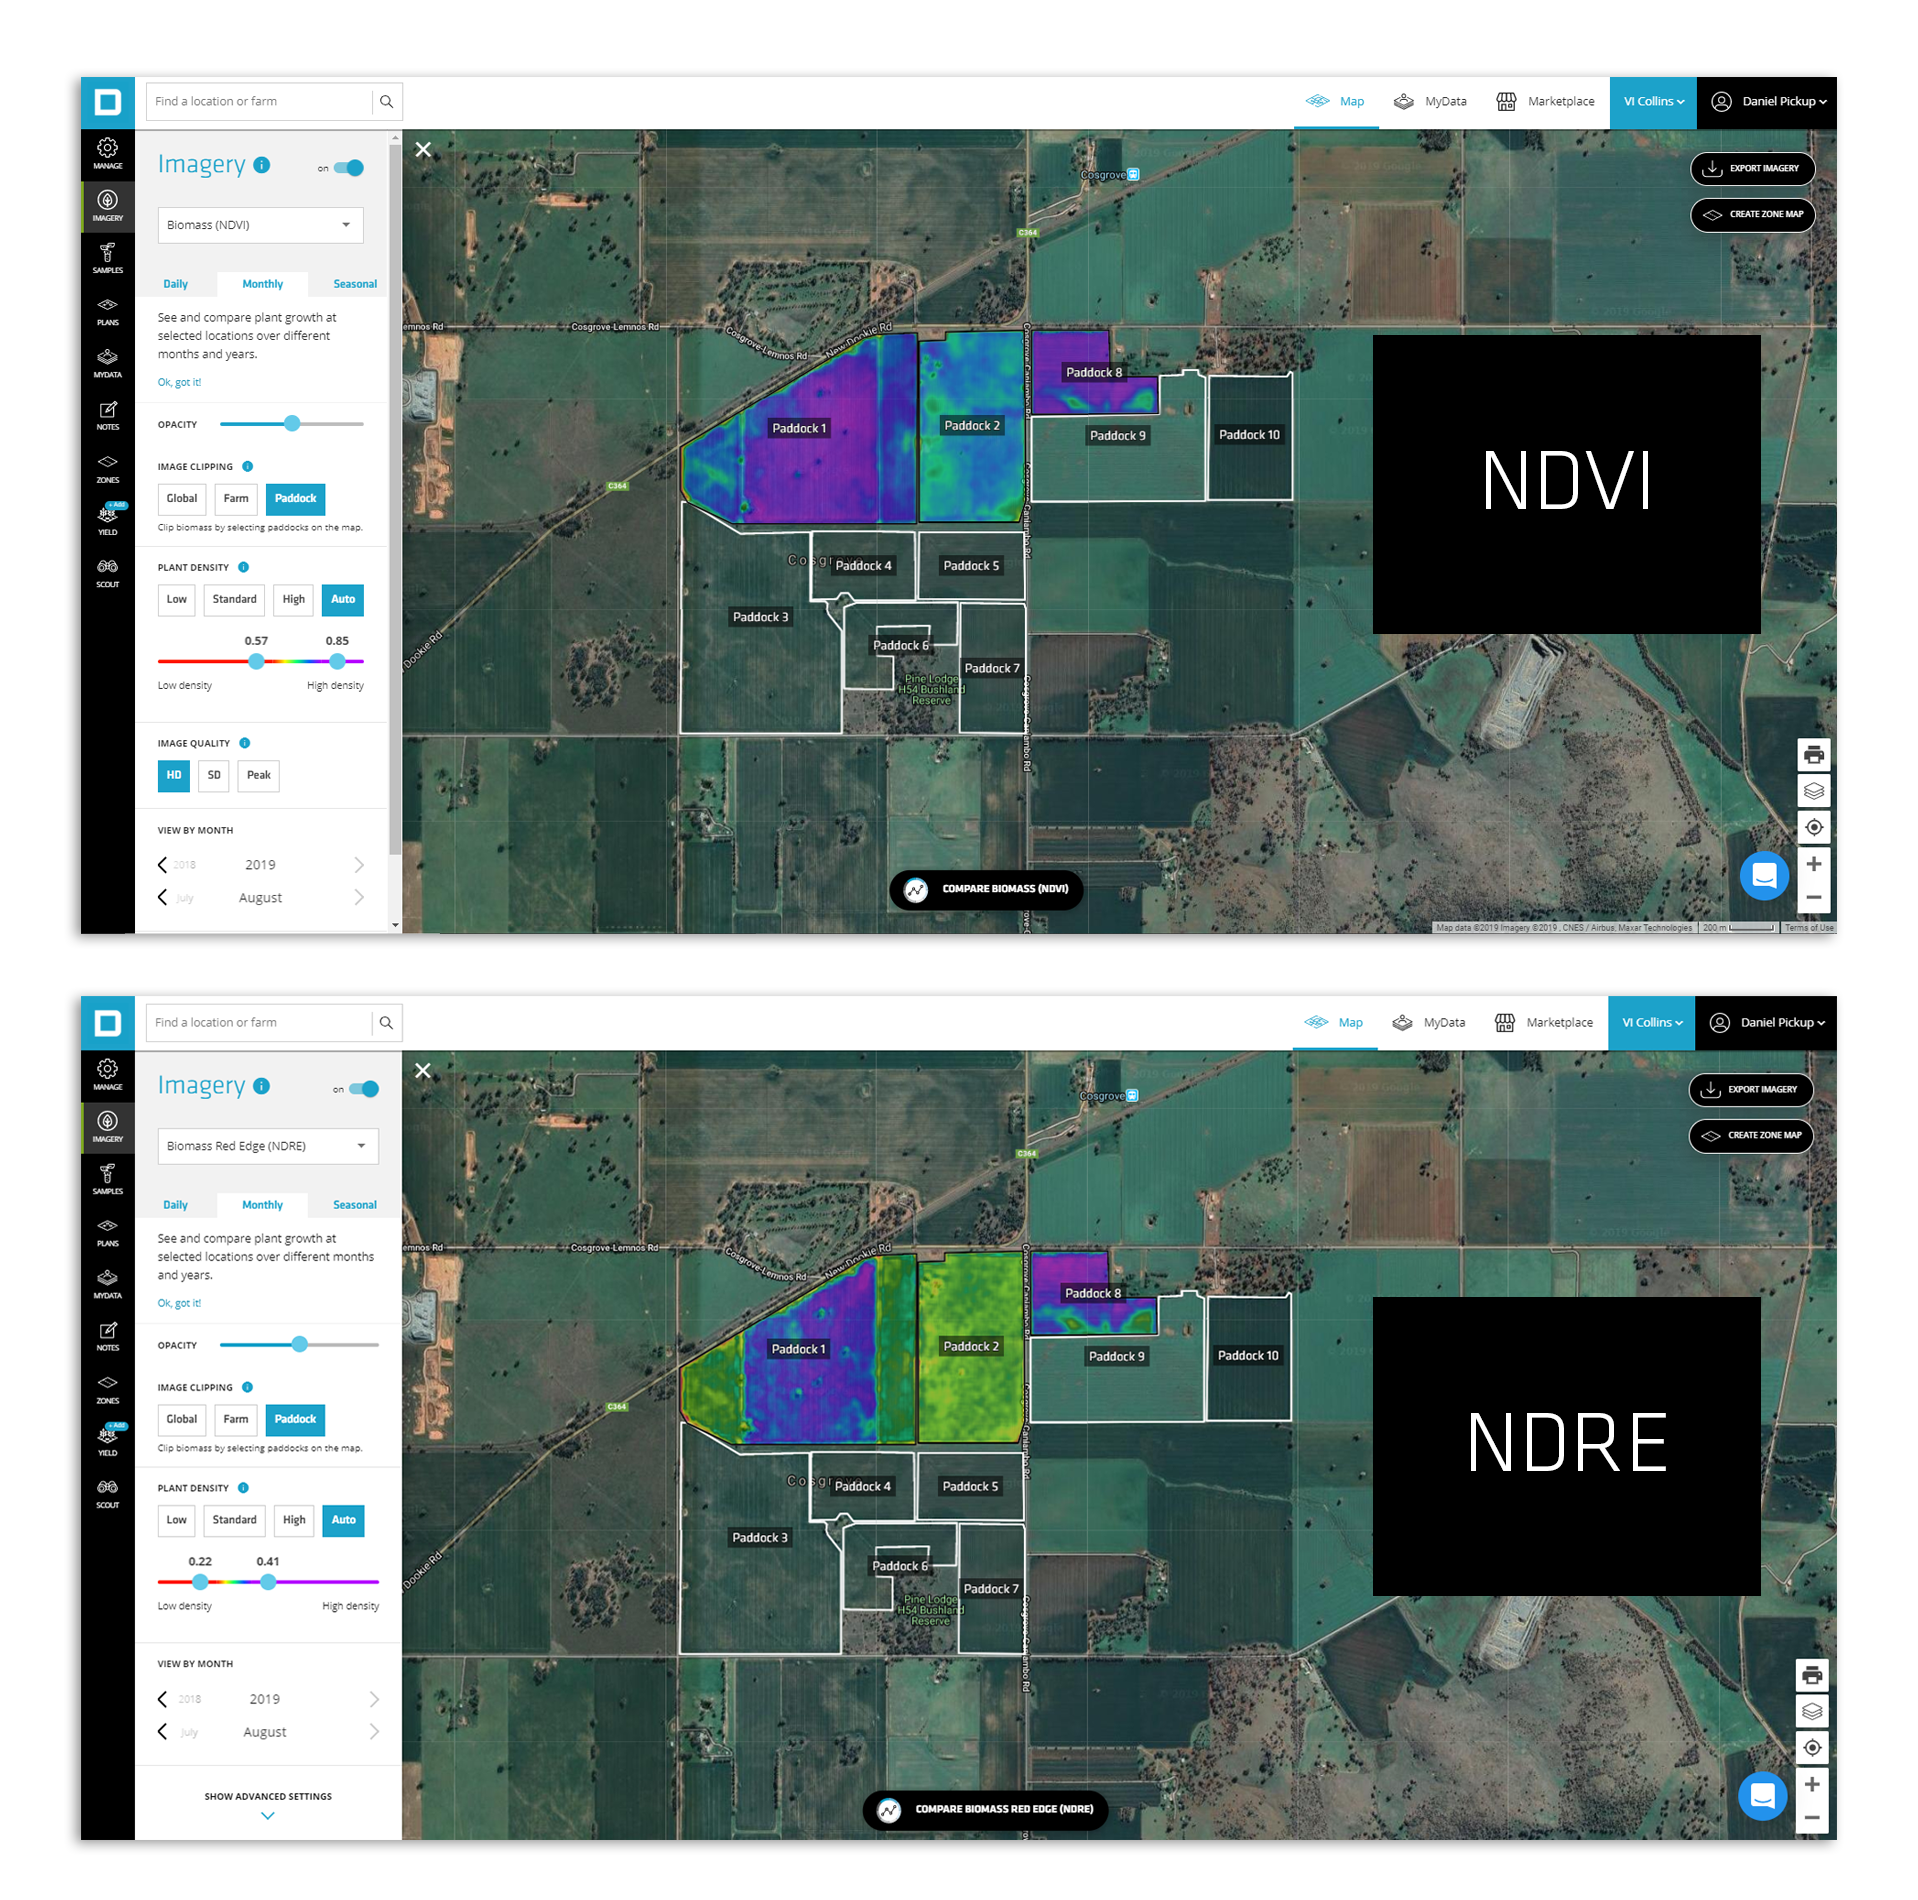 What is the difference between NDVI & NDRE imagery?